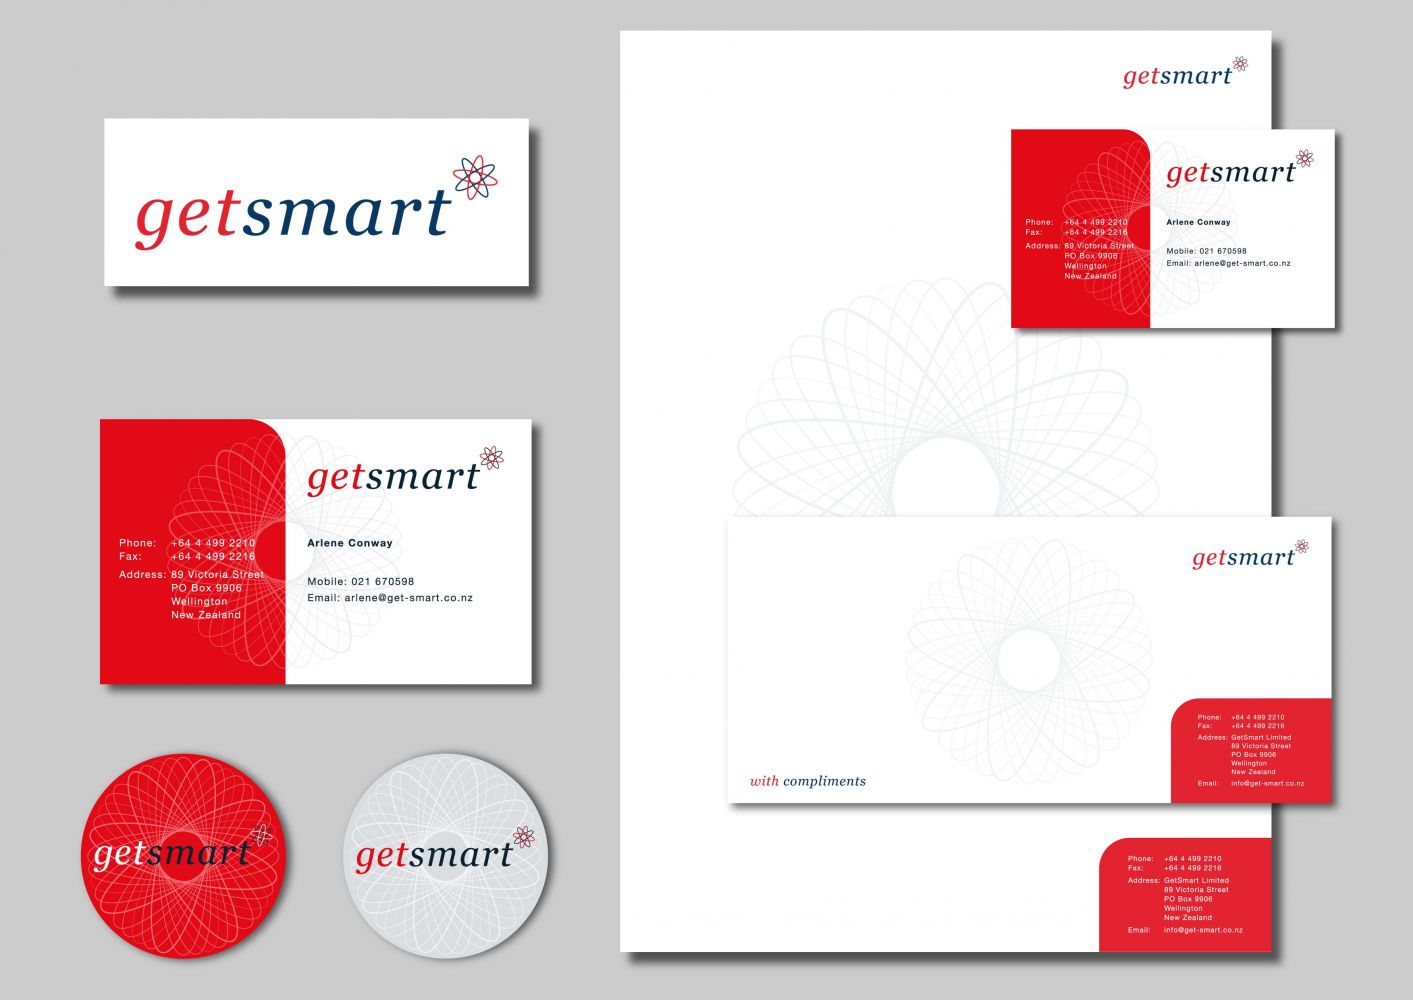 Getsmart Business Stationery